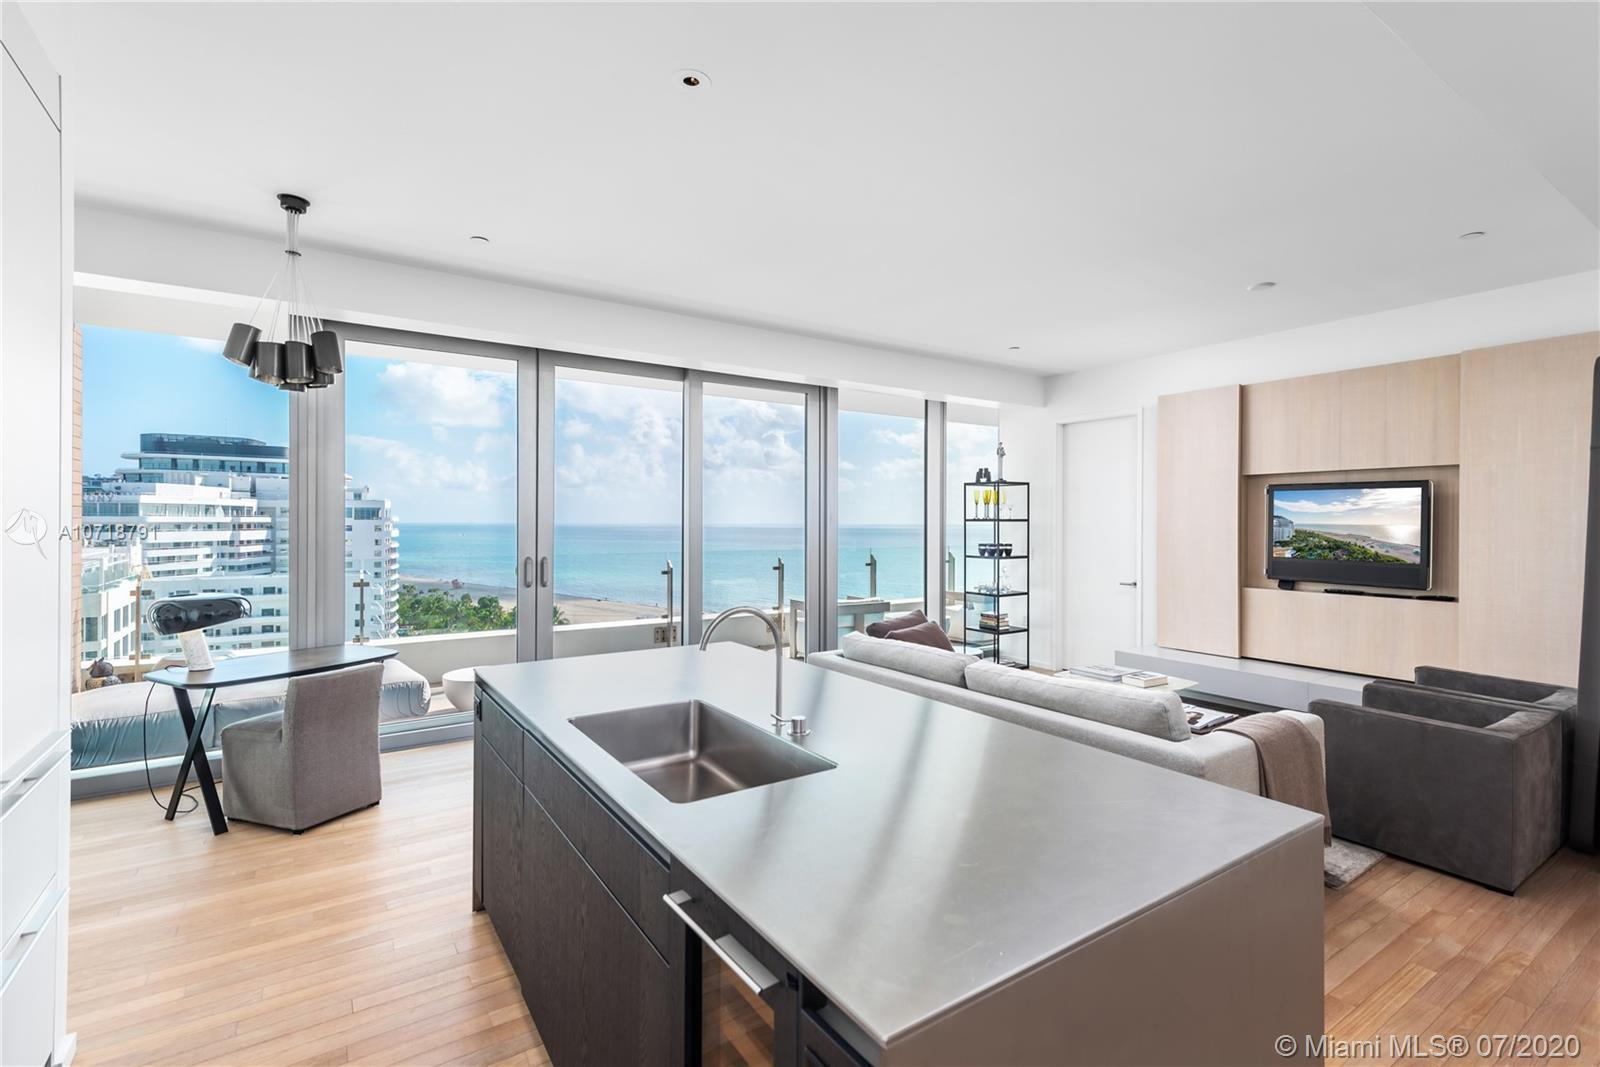 Spacious 1 bedroom 1 and a half bath featuring full-length windows and terrace with ocean and Indian